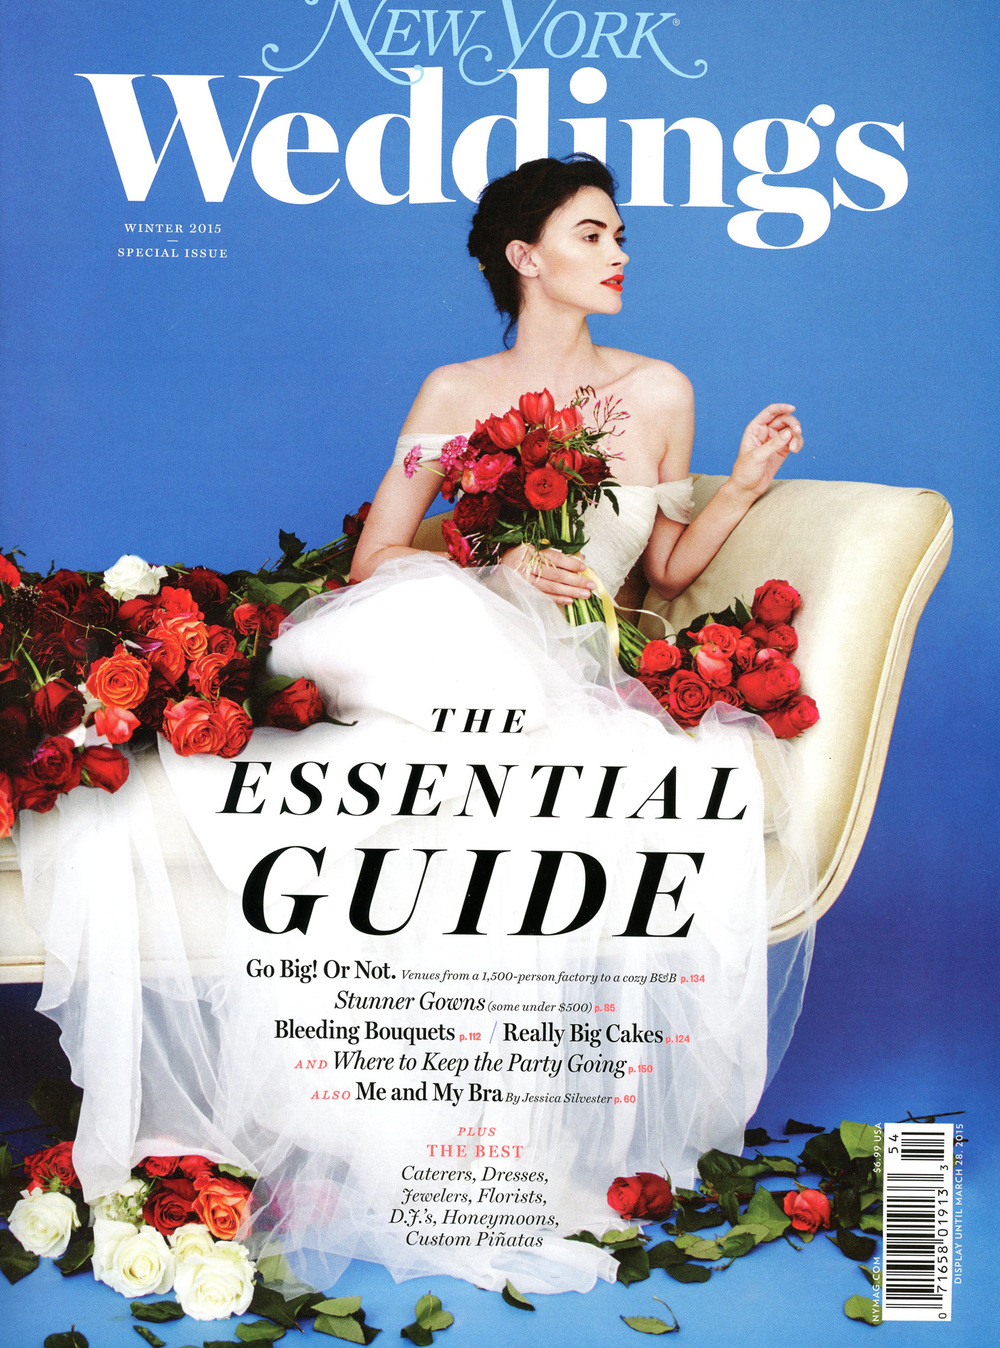 NY-MAG-2015-R-WAGNER-Photography-Cover.jpg